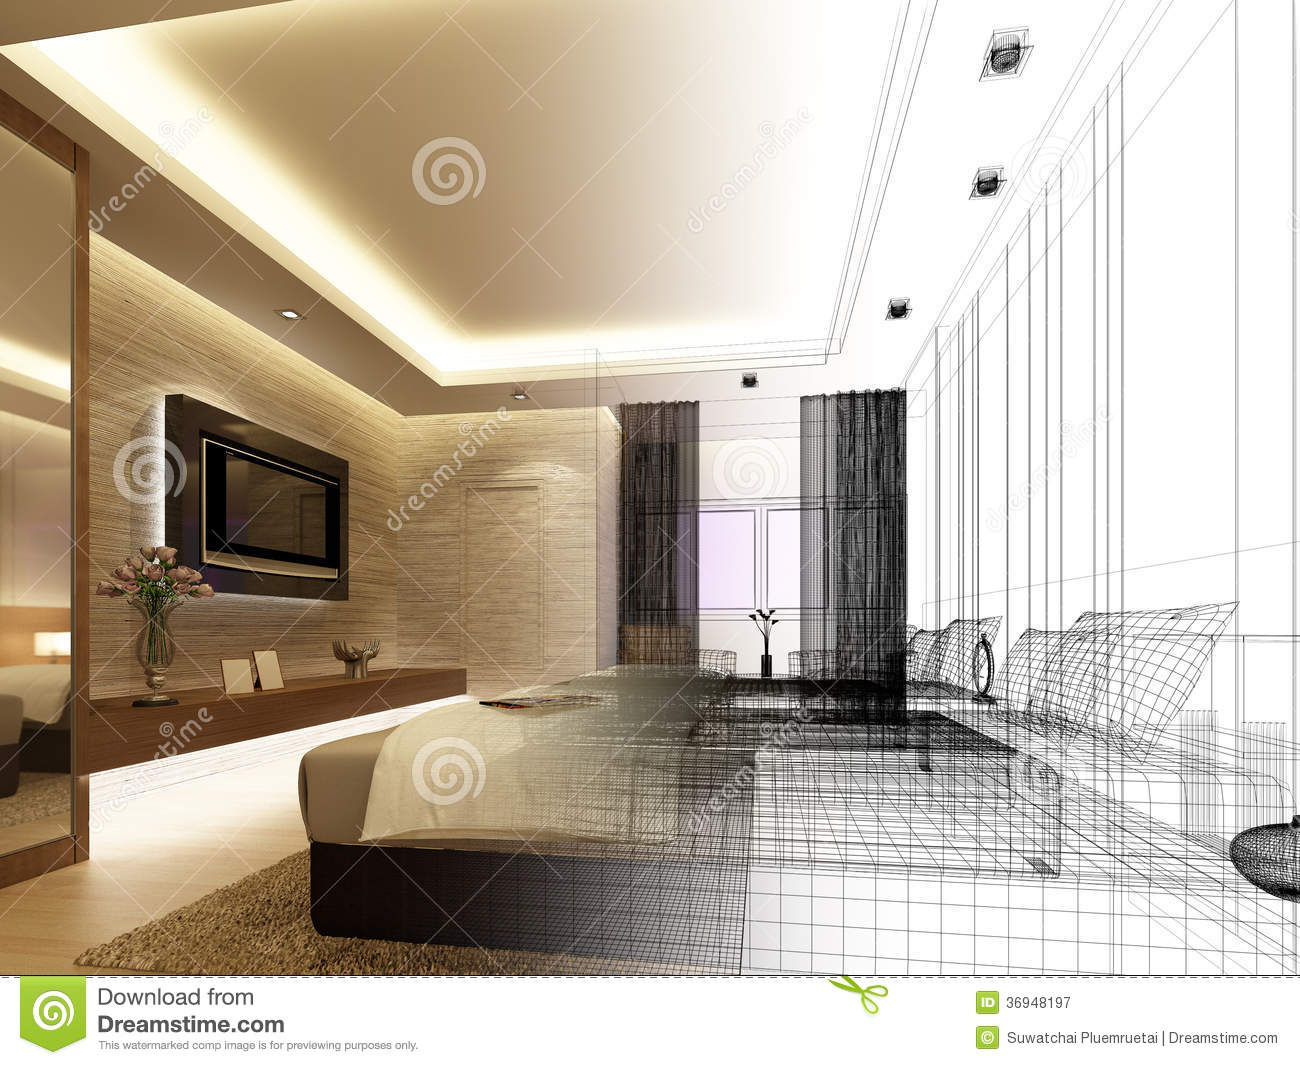 Sketch design of interior bedroom stock illustration for Image of interior design